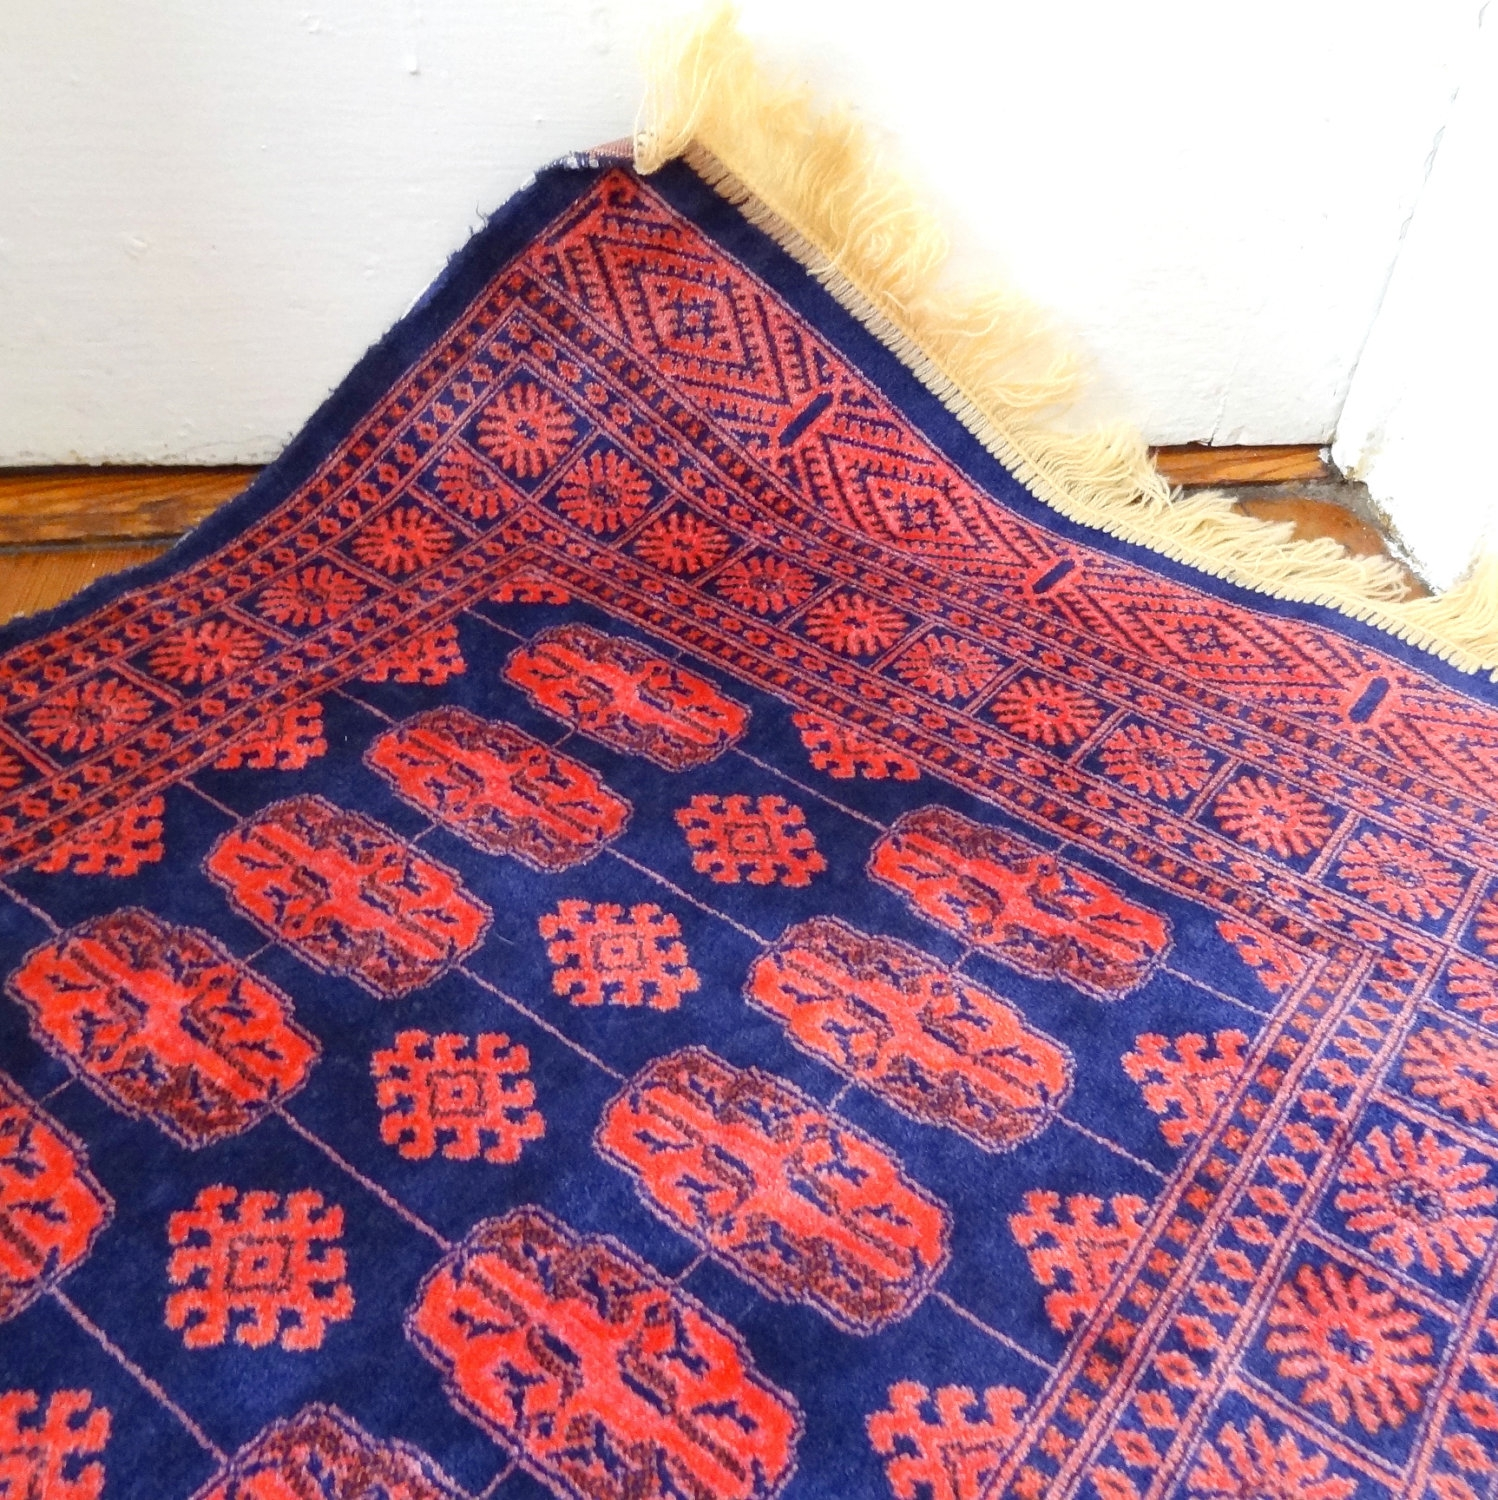 Bohemian Rugs Kilim Rug Even More Popular Were Rugs Utilizing Inside Bohemian Rugs (Image 5 of 15)